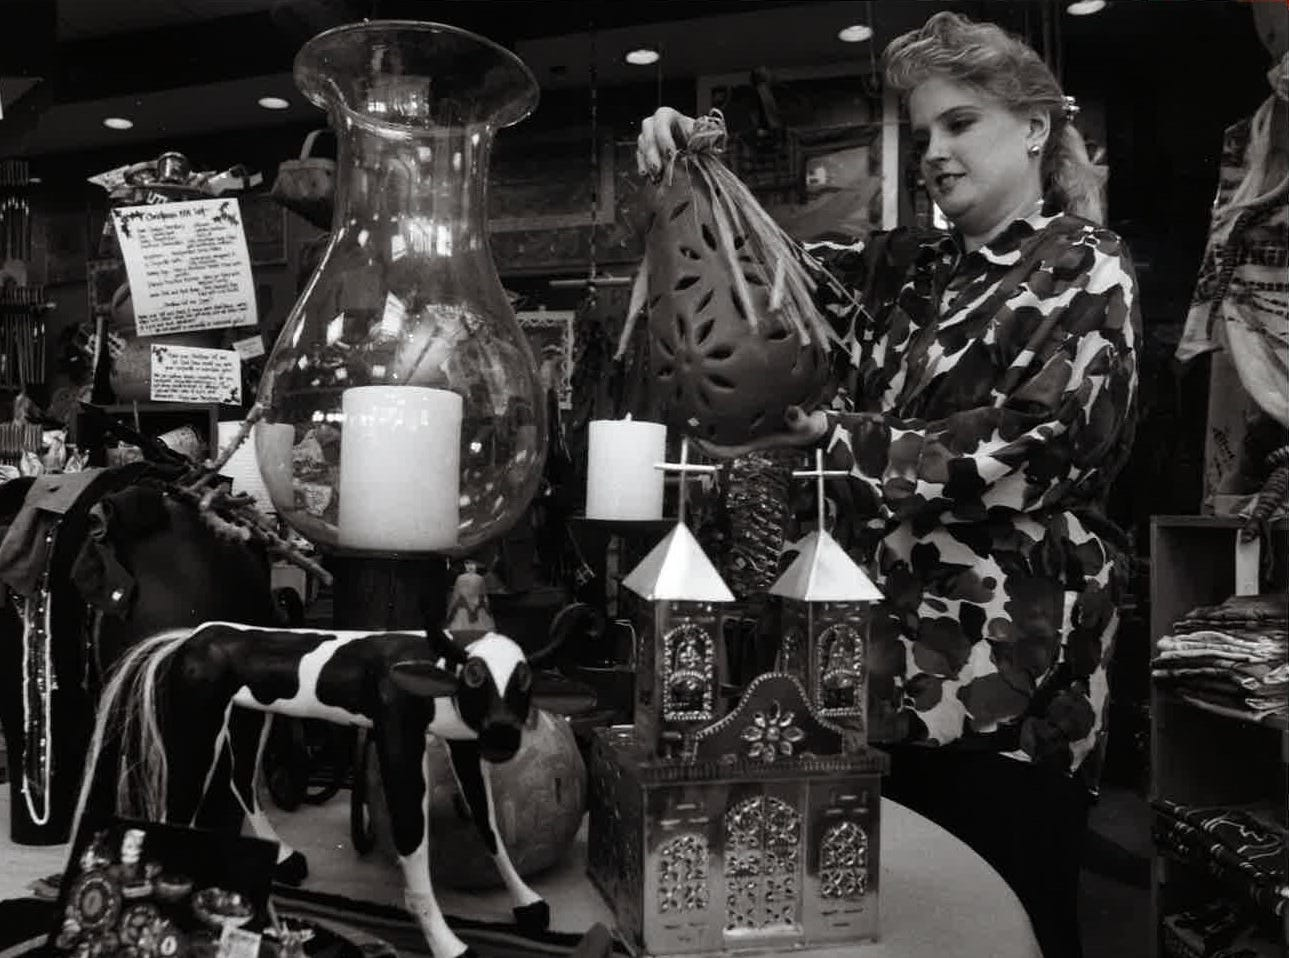 Meg Stengele, Manager of Que Pasa at the Arizona Center in November 1991.